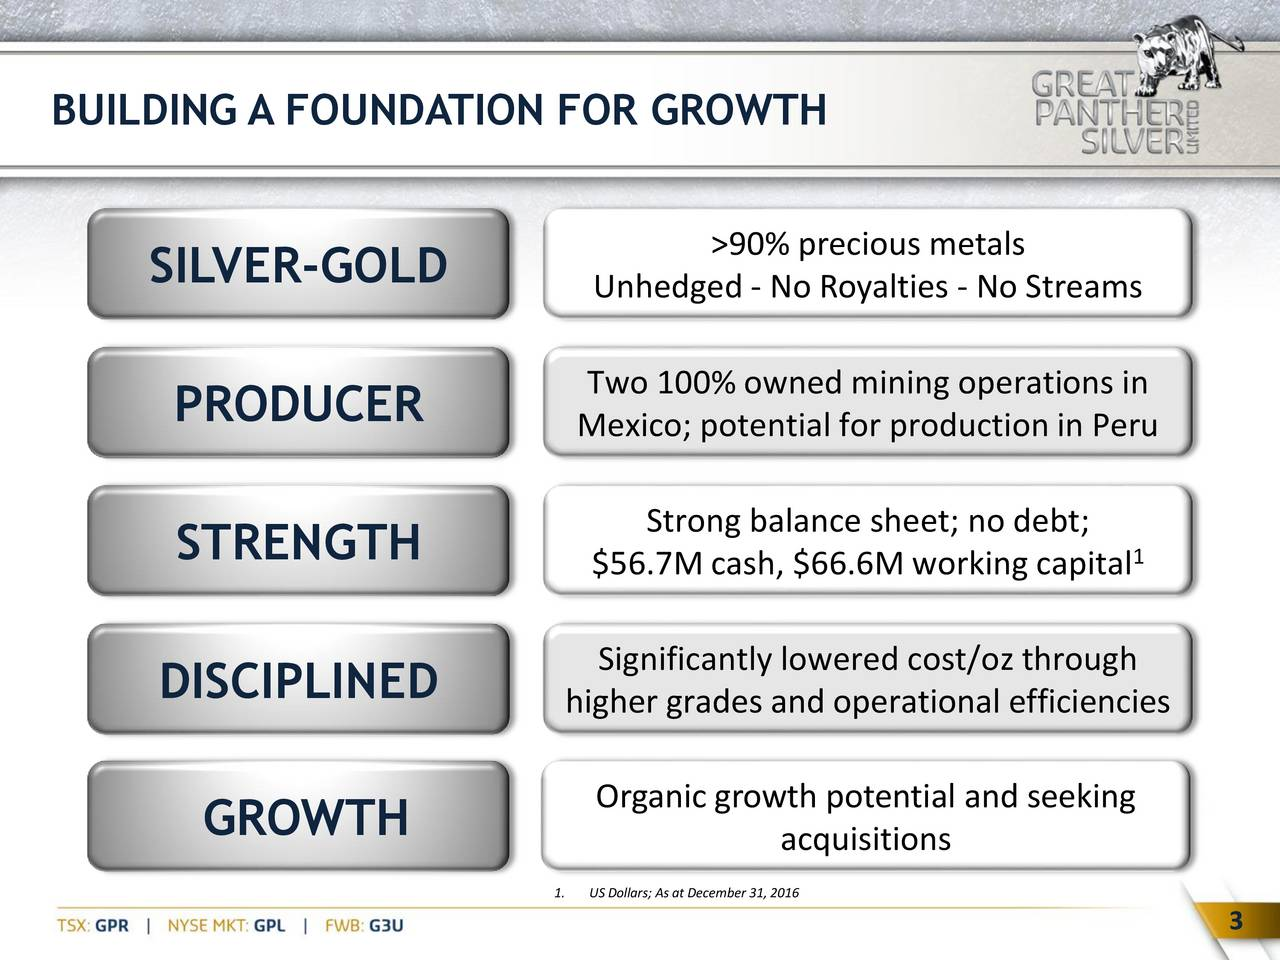 >90% precious metals SILVER-GOLD Unhedged - No Royalties - No Streams Two 100% owned mining operations in PRODUCER Mexico; potential for production in Peru Strong balance sheet; no debt; STRENGTH $56.7M cash, $66.6M working capital Significantly lowered cost/oz through DISCIPLINED higher grades and operational efficiencies GROWTH Organic growth potential and seeking acquisitions 1. US Dollars; As at December 31,2016 3